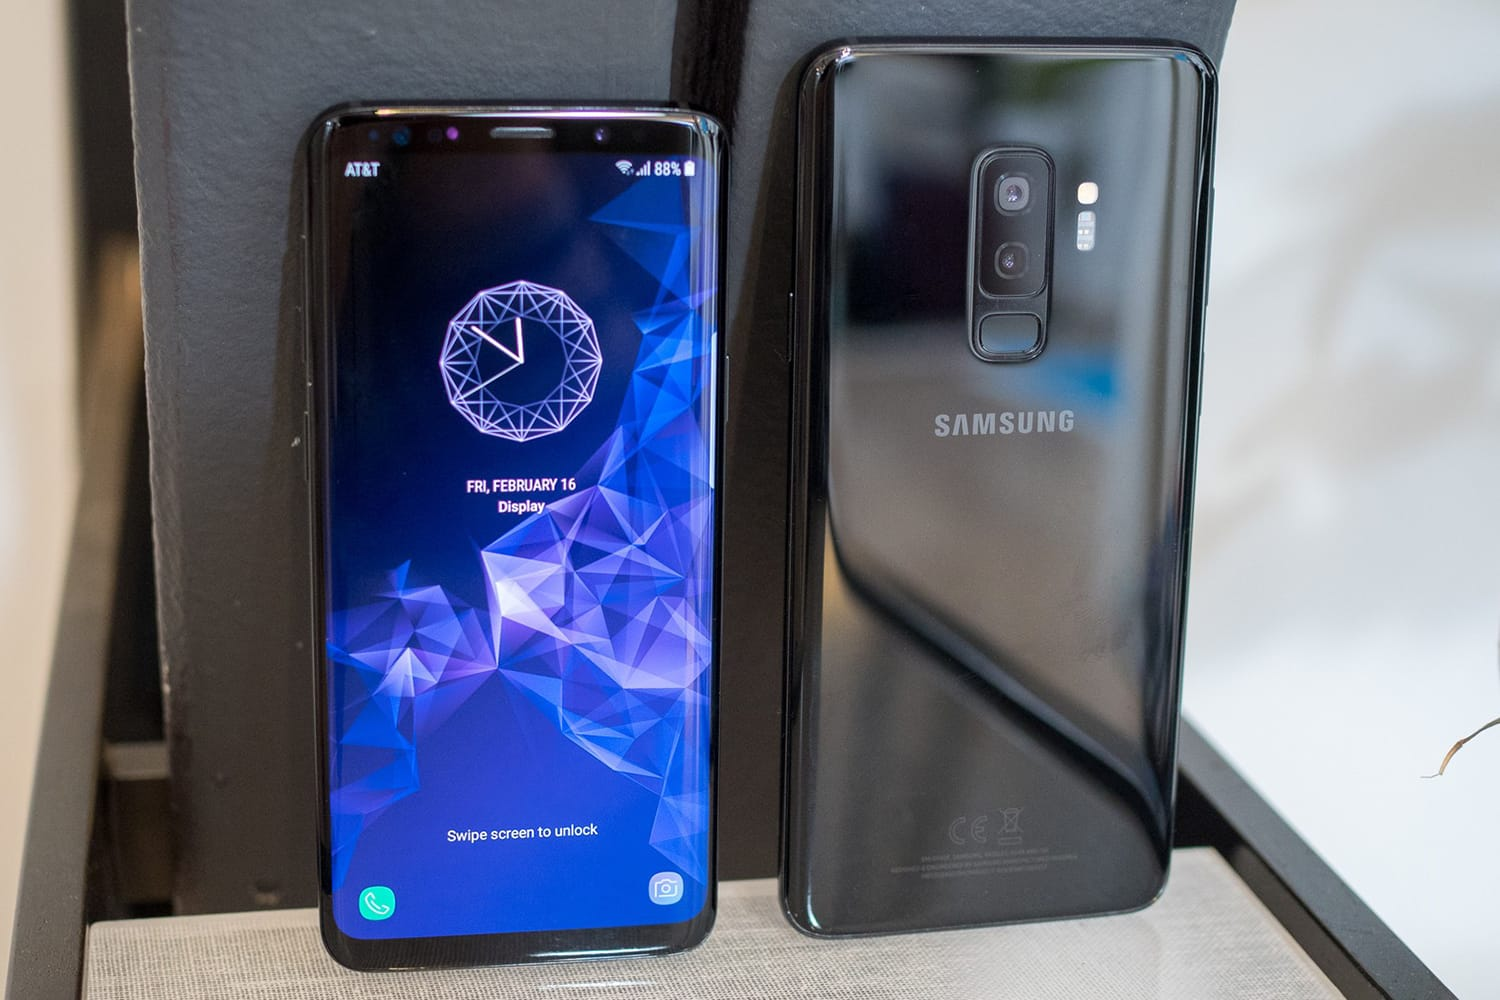 Samsung Galaxy S9 and Note 9 receive an upgrade to One UI 2.1